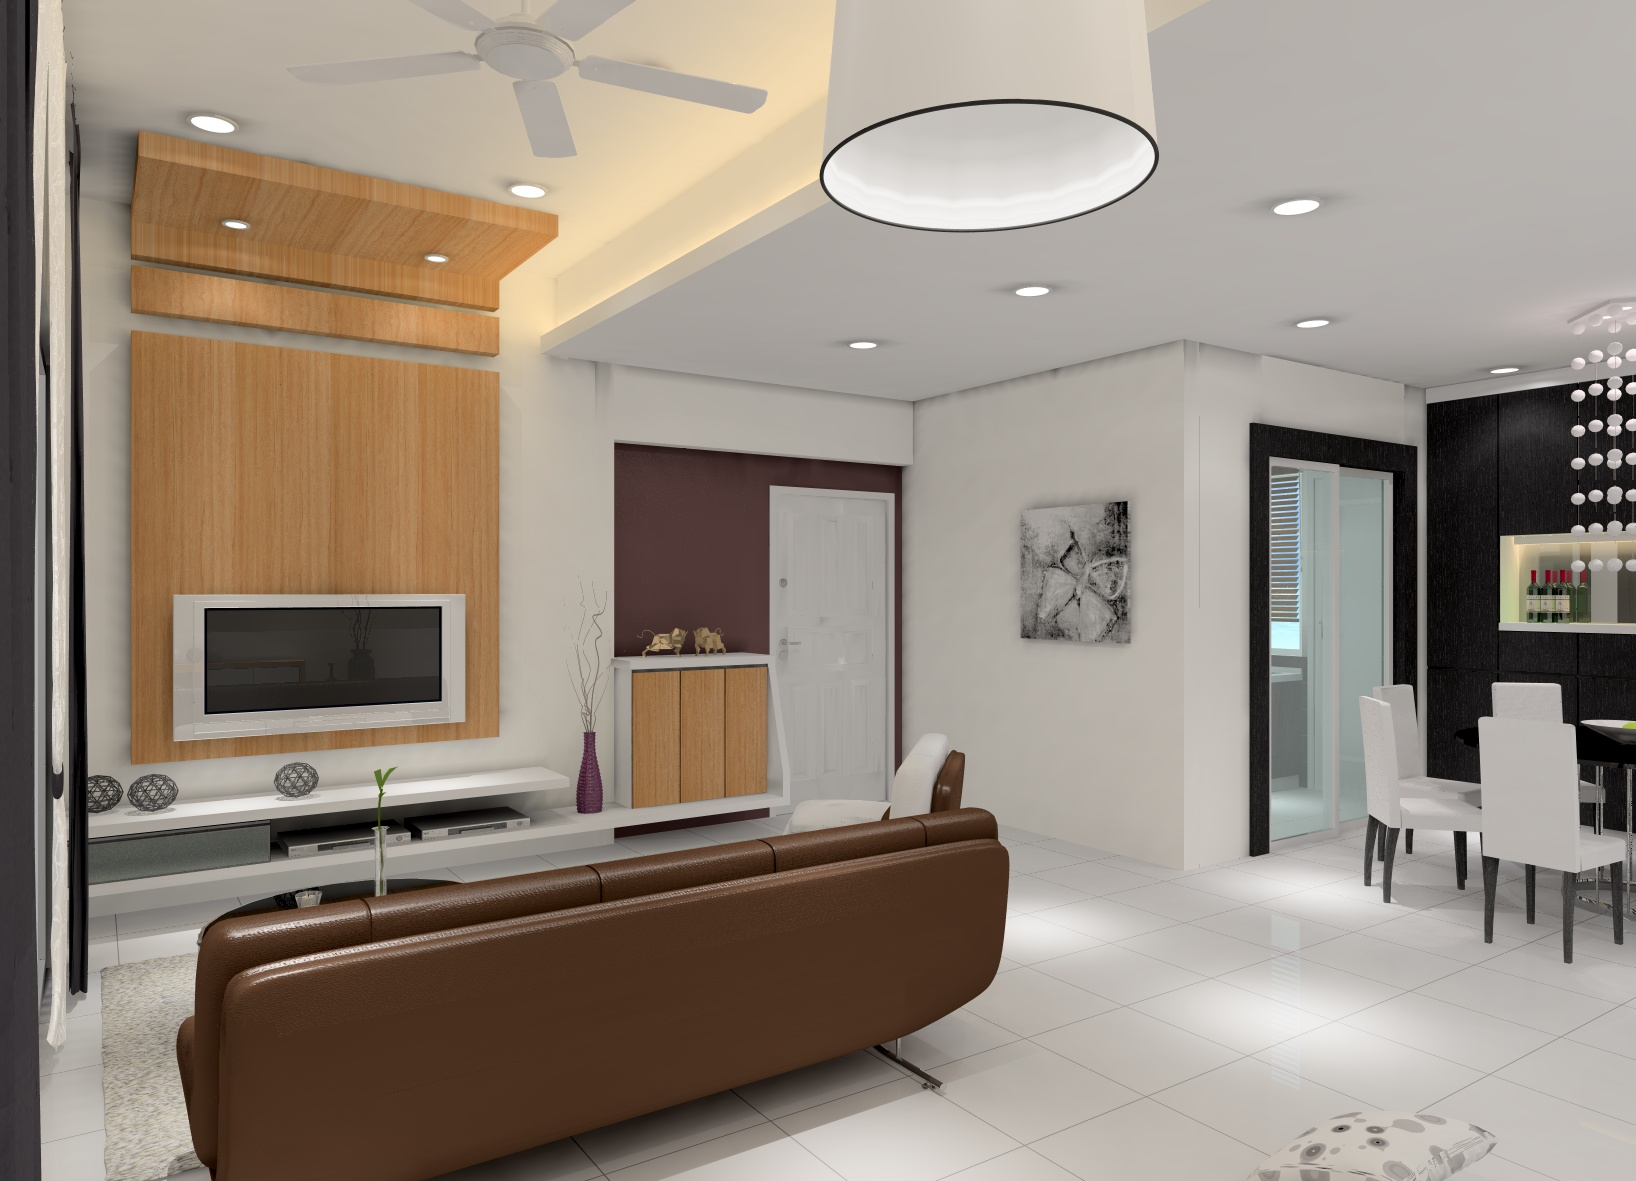 Interior design malaysia l expert interior design renovation company l yk - Interior designs ...